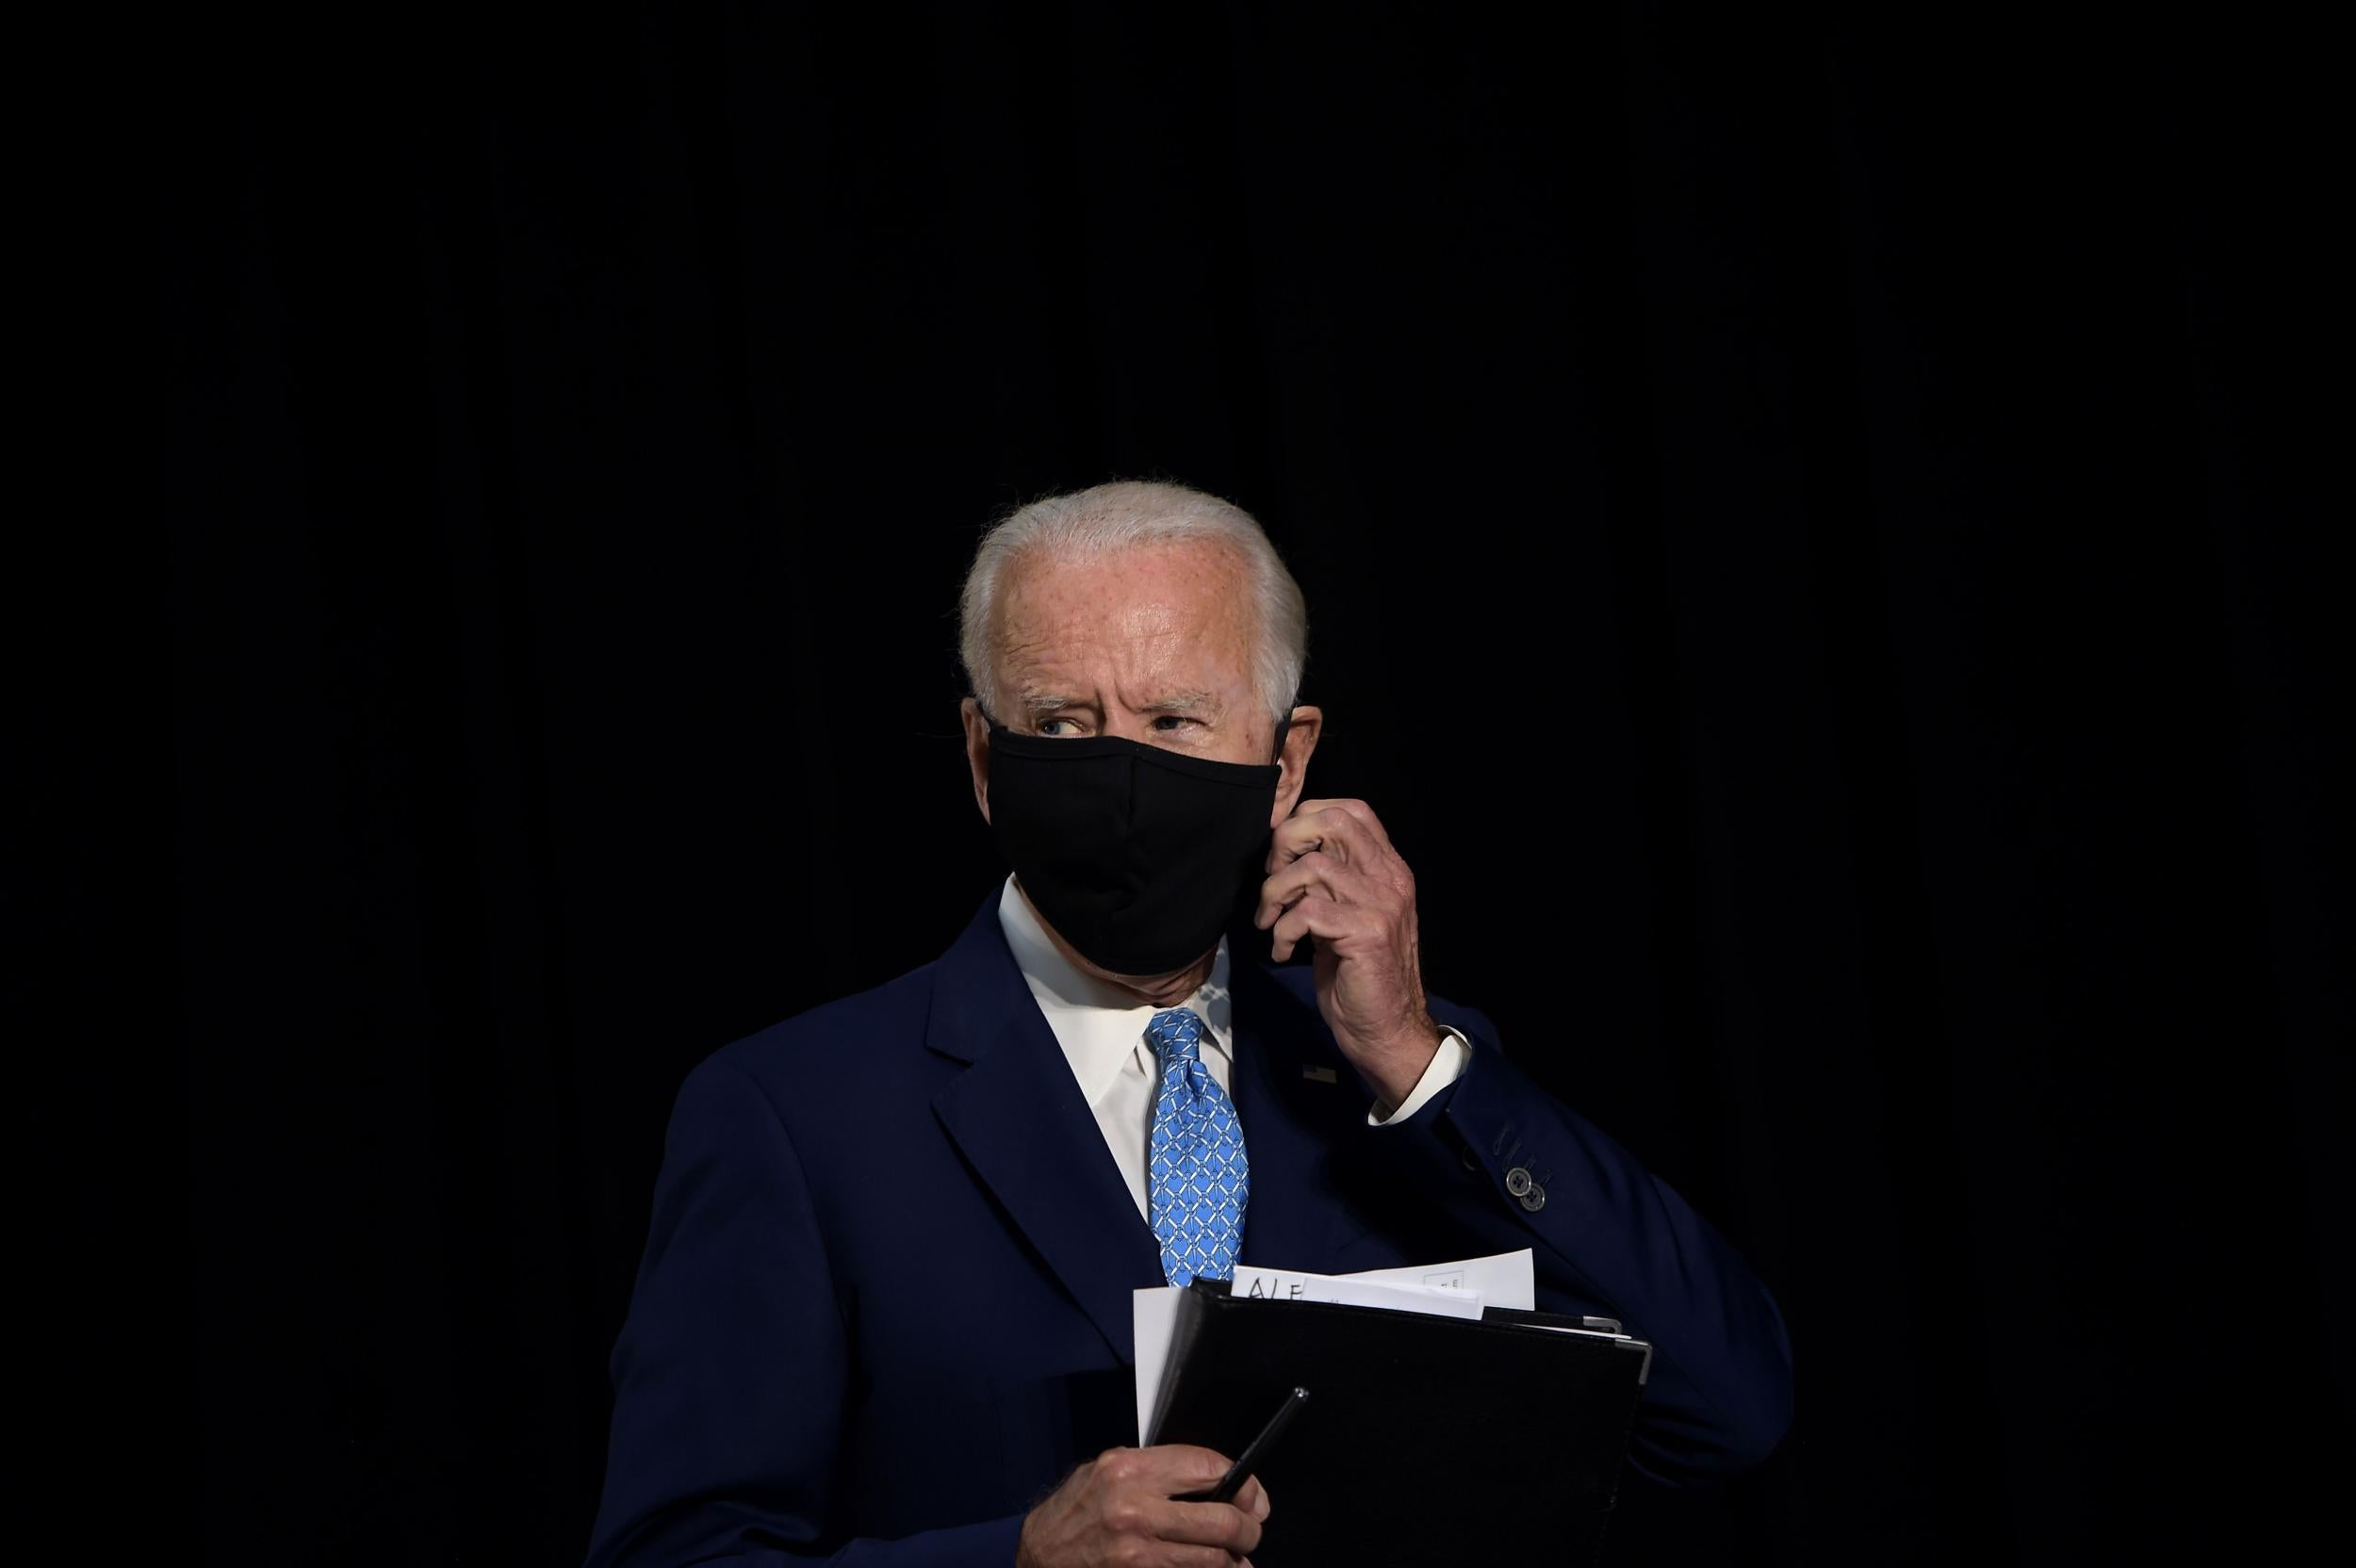 Coronavirus: Biden slams Trump and tells him to fix PPE shortages 'before you tee off another round of golf' photo